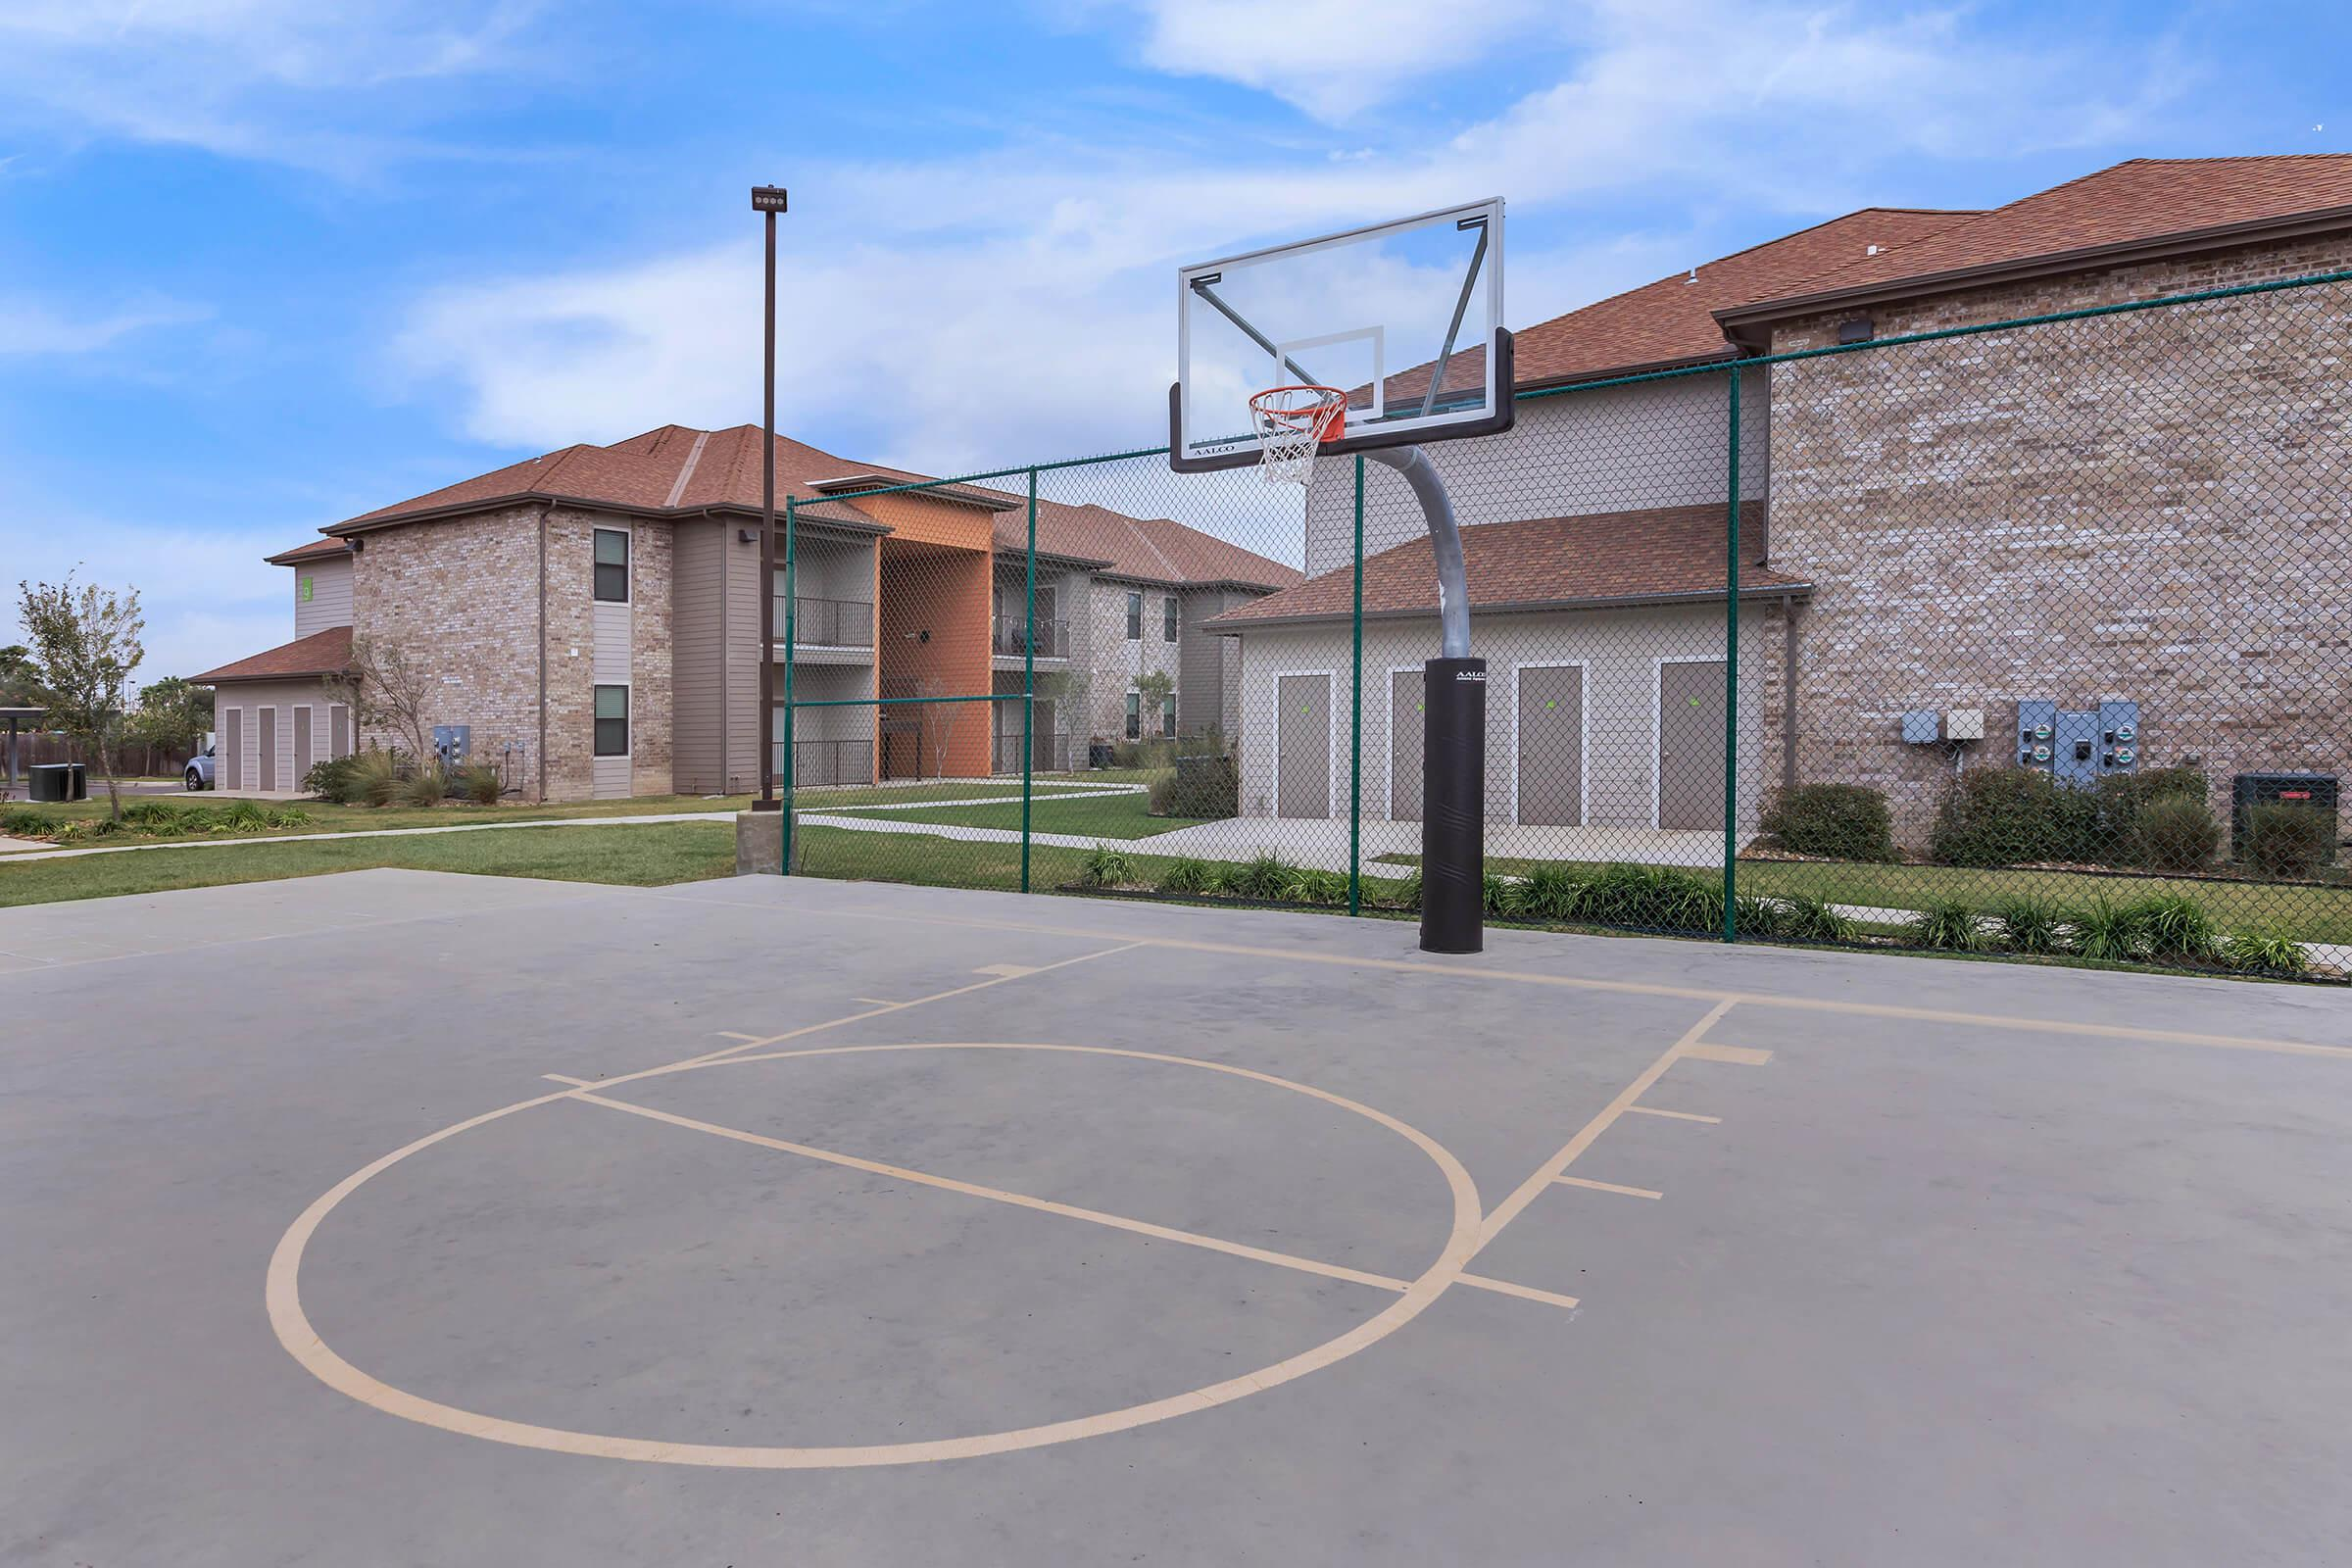 a house with a basketball on a brick building